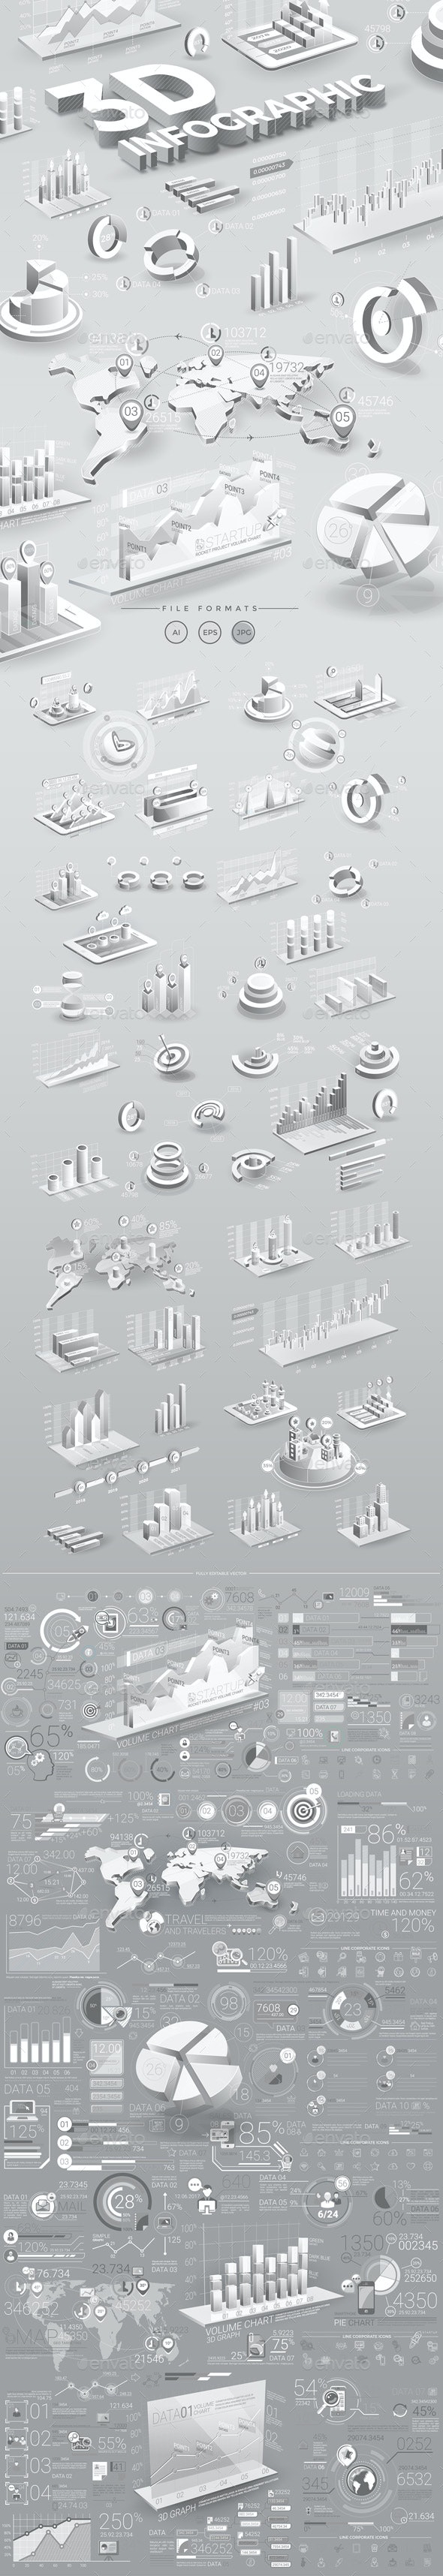 White Infographic Elements - Infographics